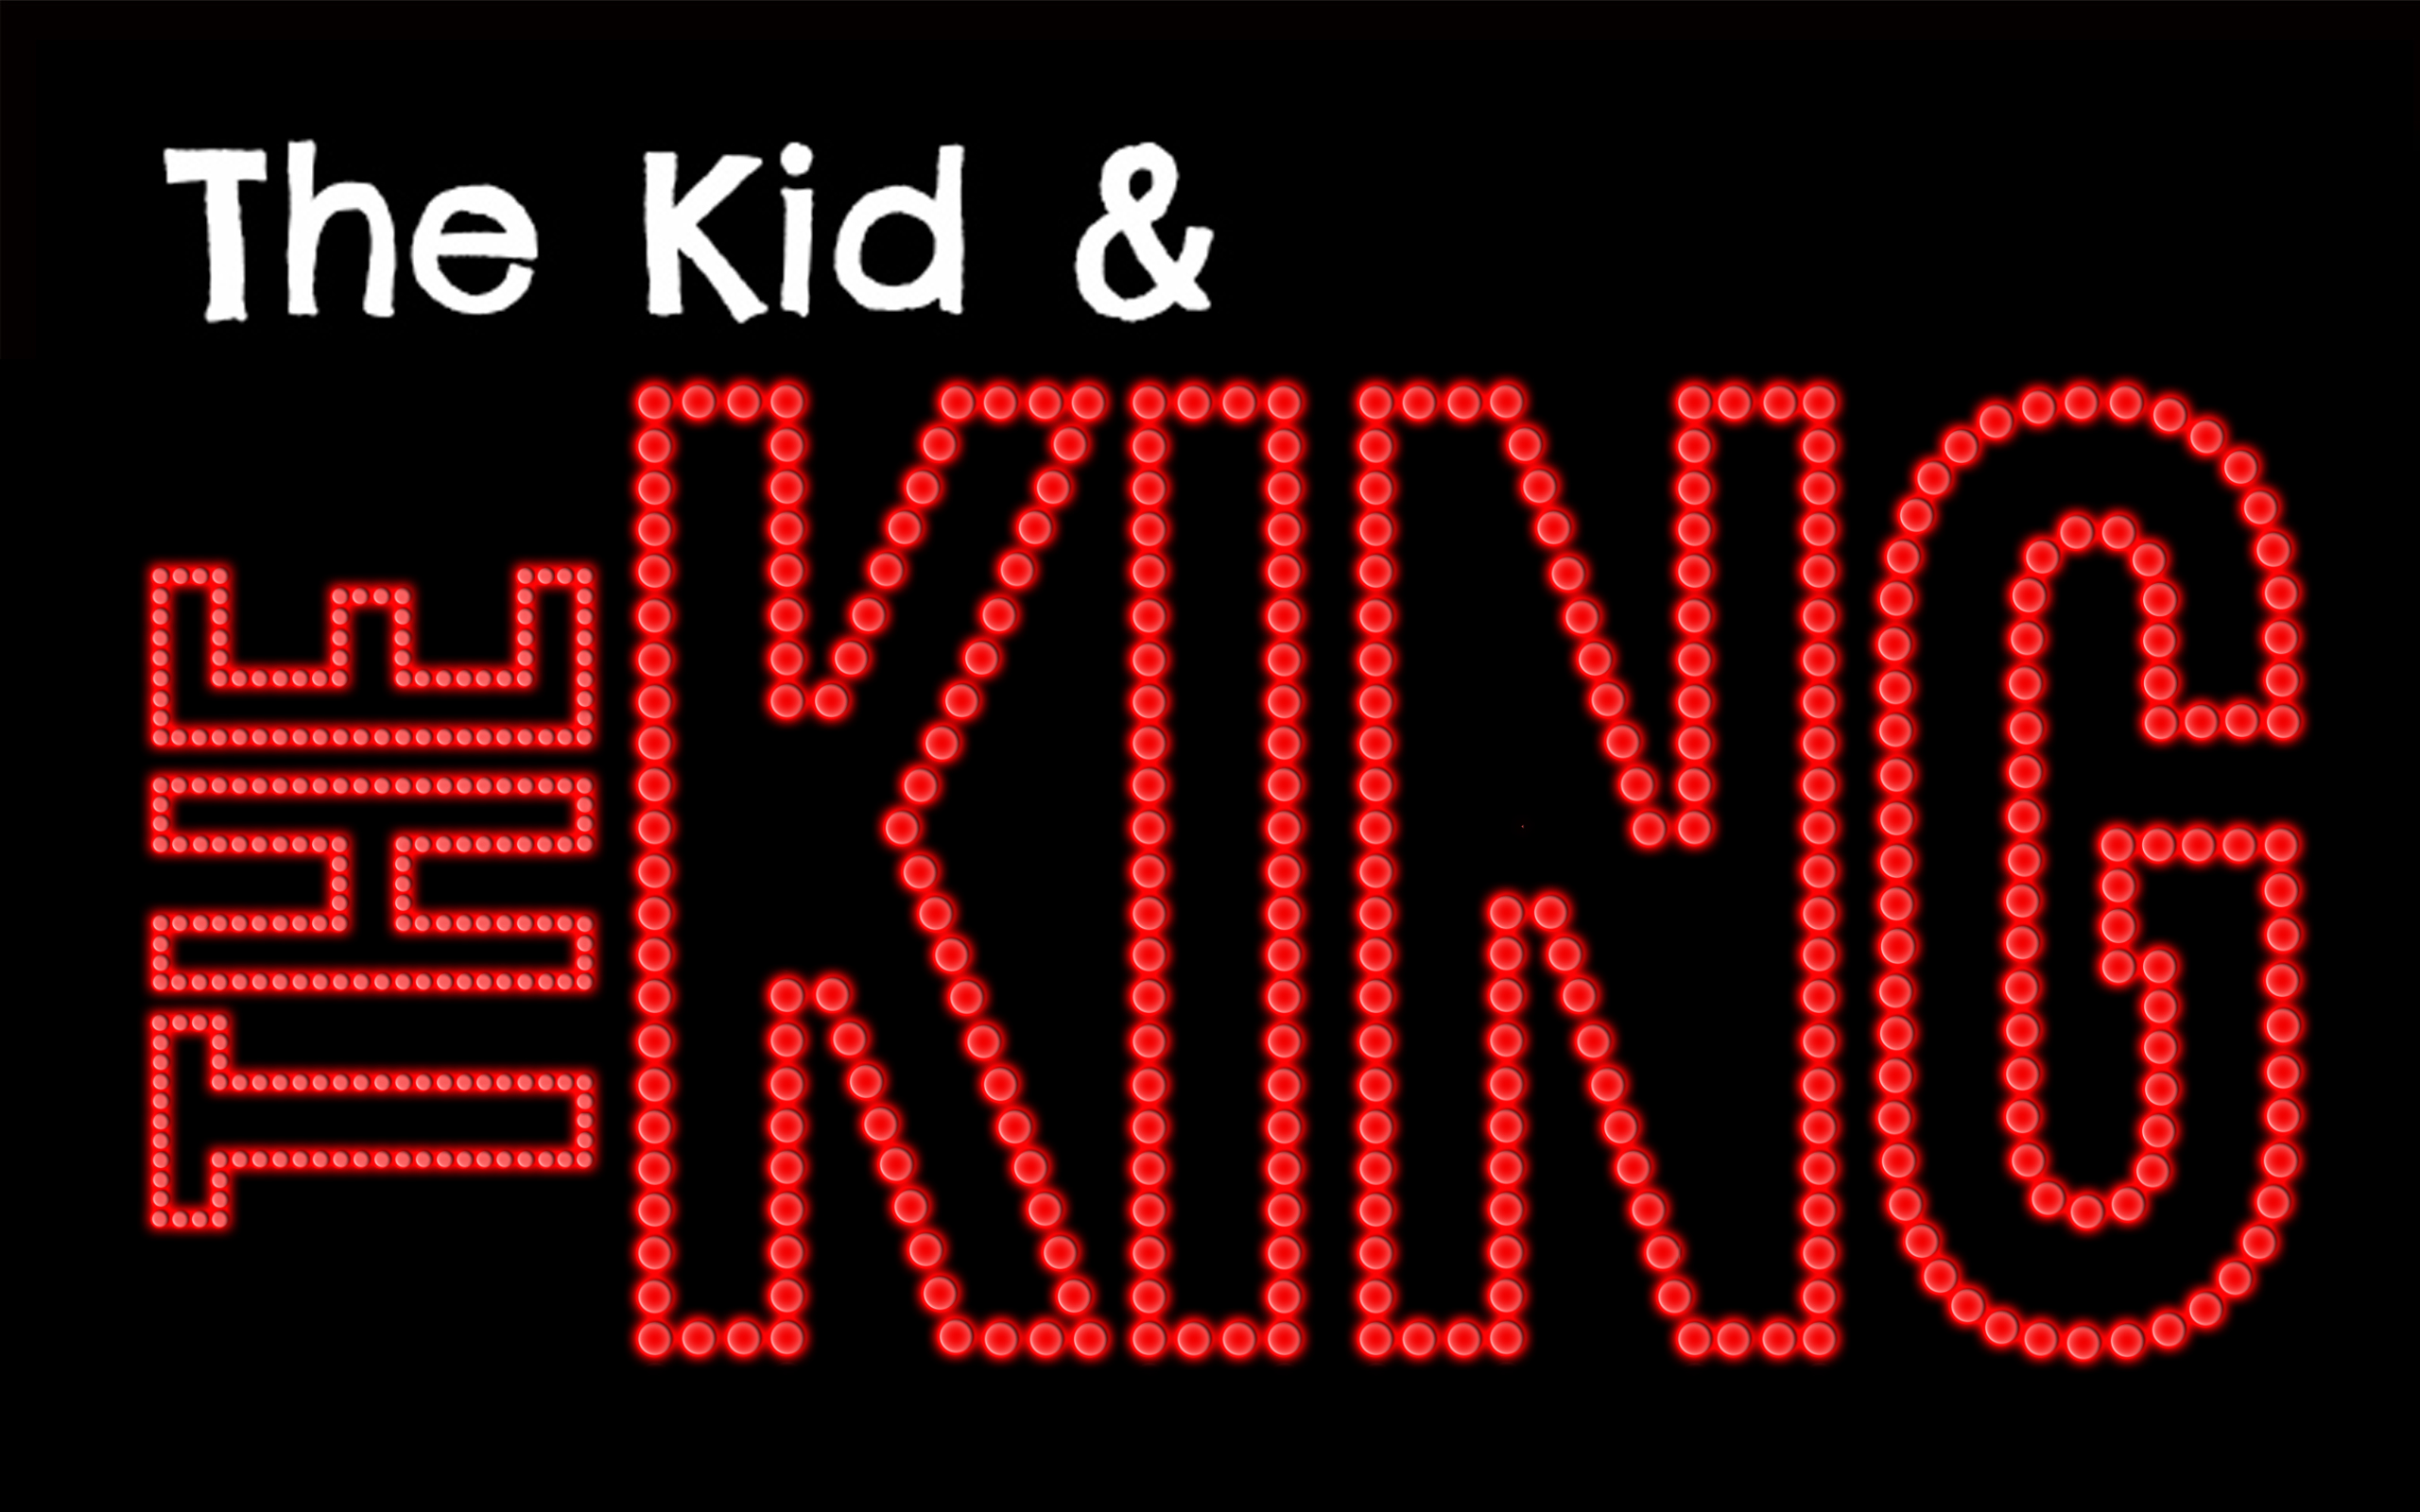 The Kid and The King Image